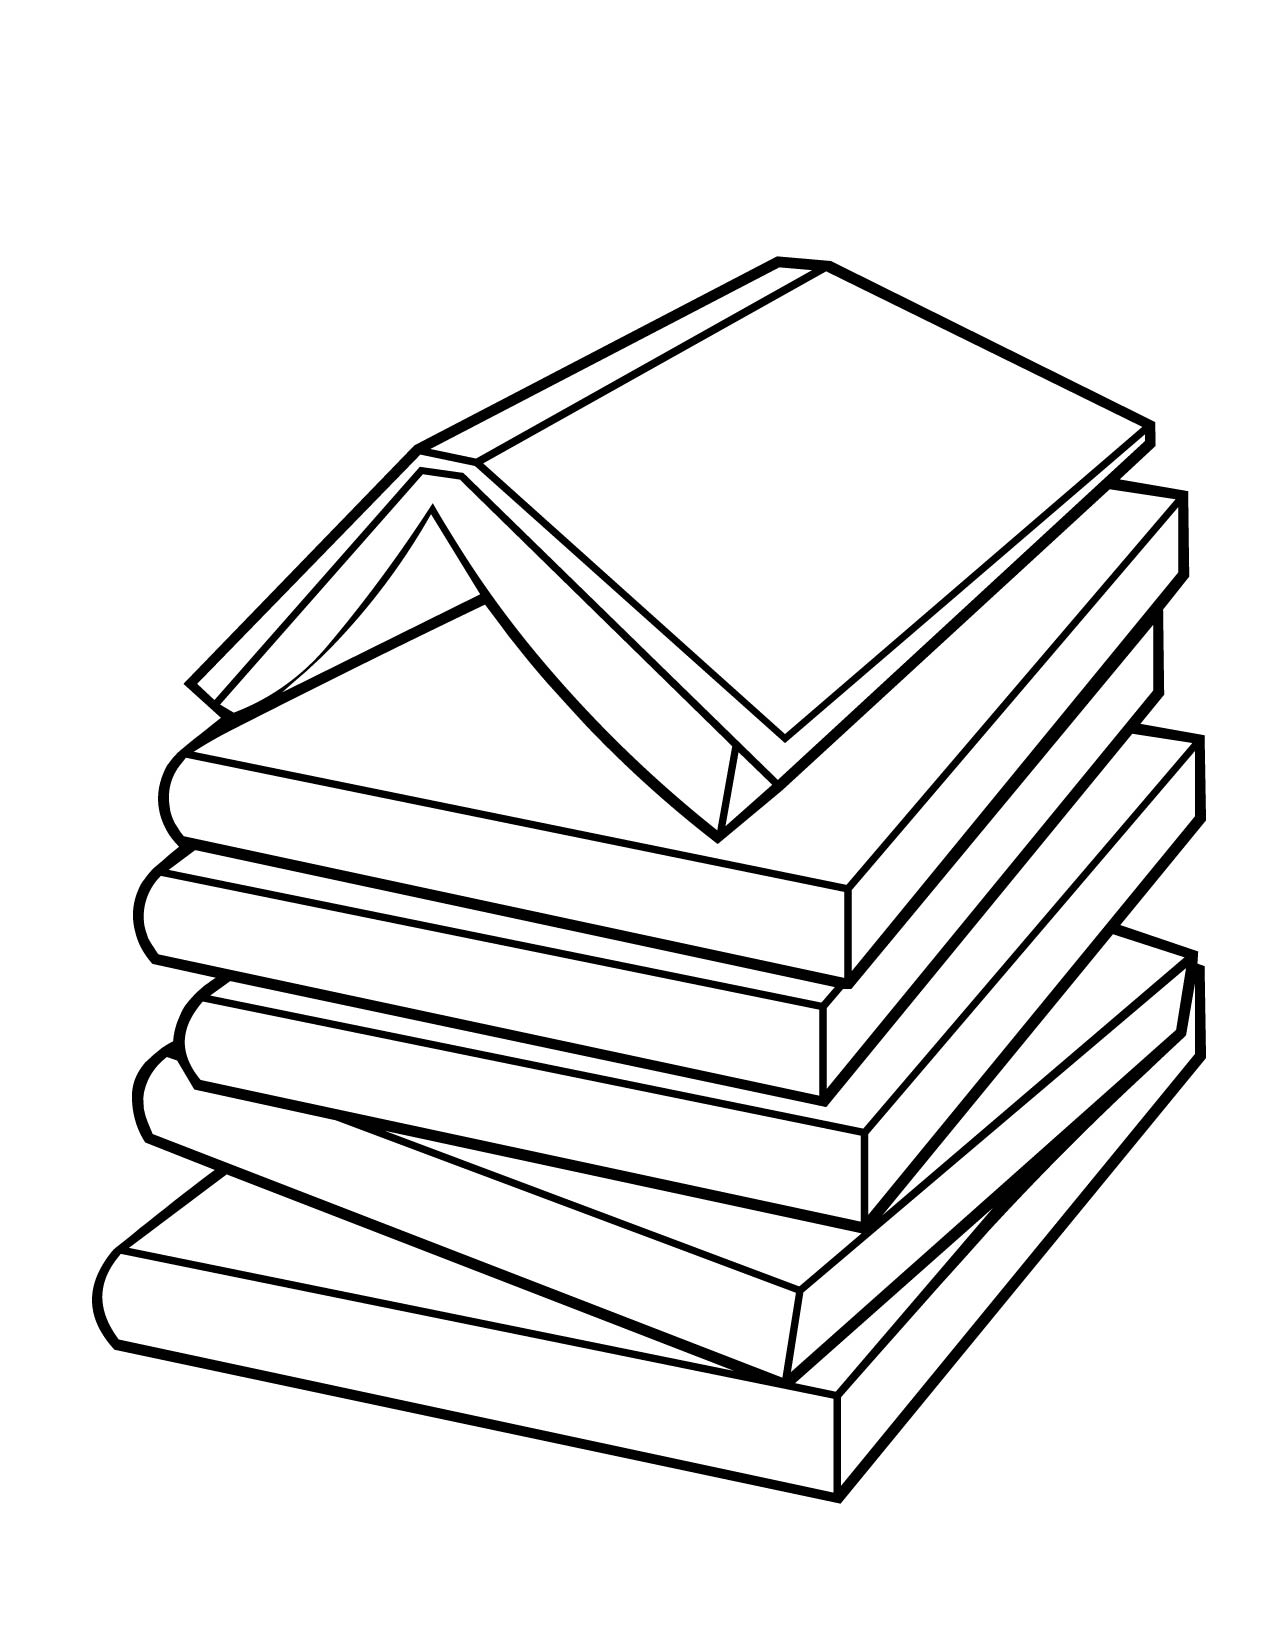 Coloring Book Online Coloring : Book coloring pages to download and print for free